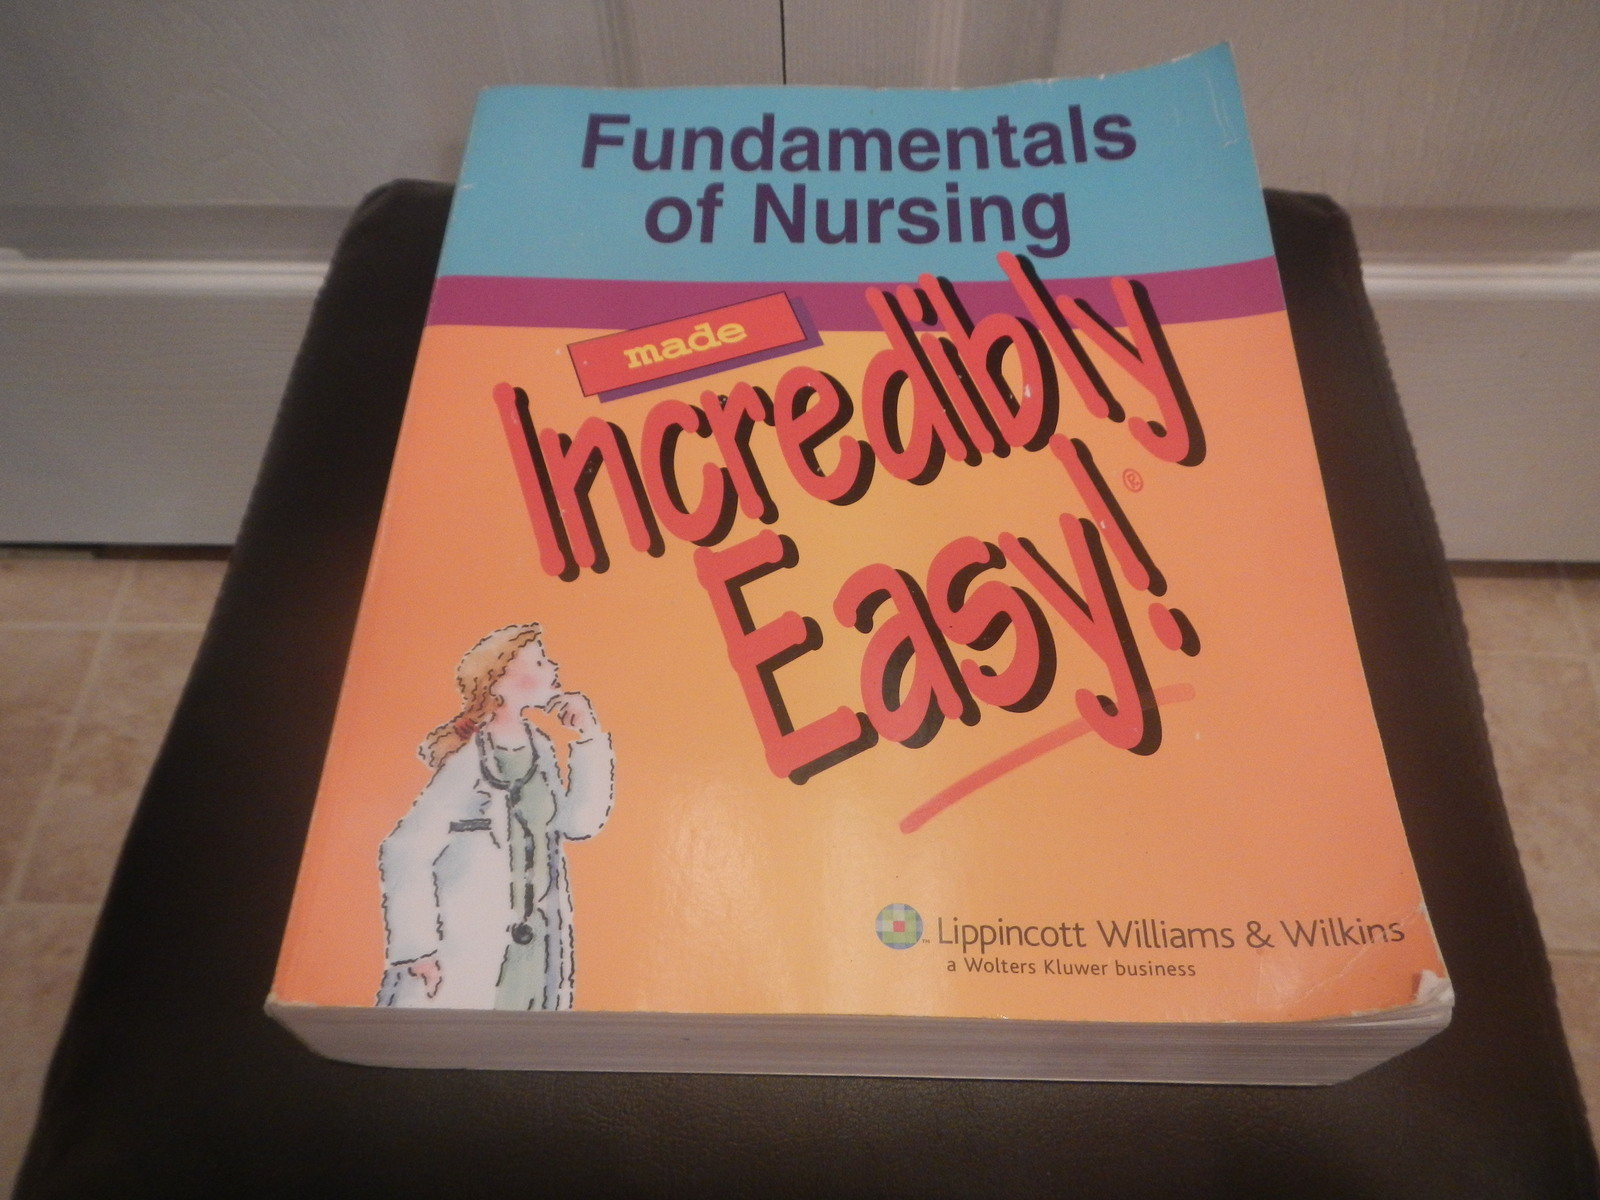 fundamentals of nursing Fundamentals of nursing, now in its 3rd edition, continues in its groundbreaking, two-volume format perfect for both concept-based and traditional curriculums, it is the only text designed the way nursing fundamentals is actually taught.